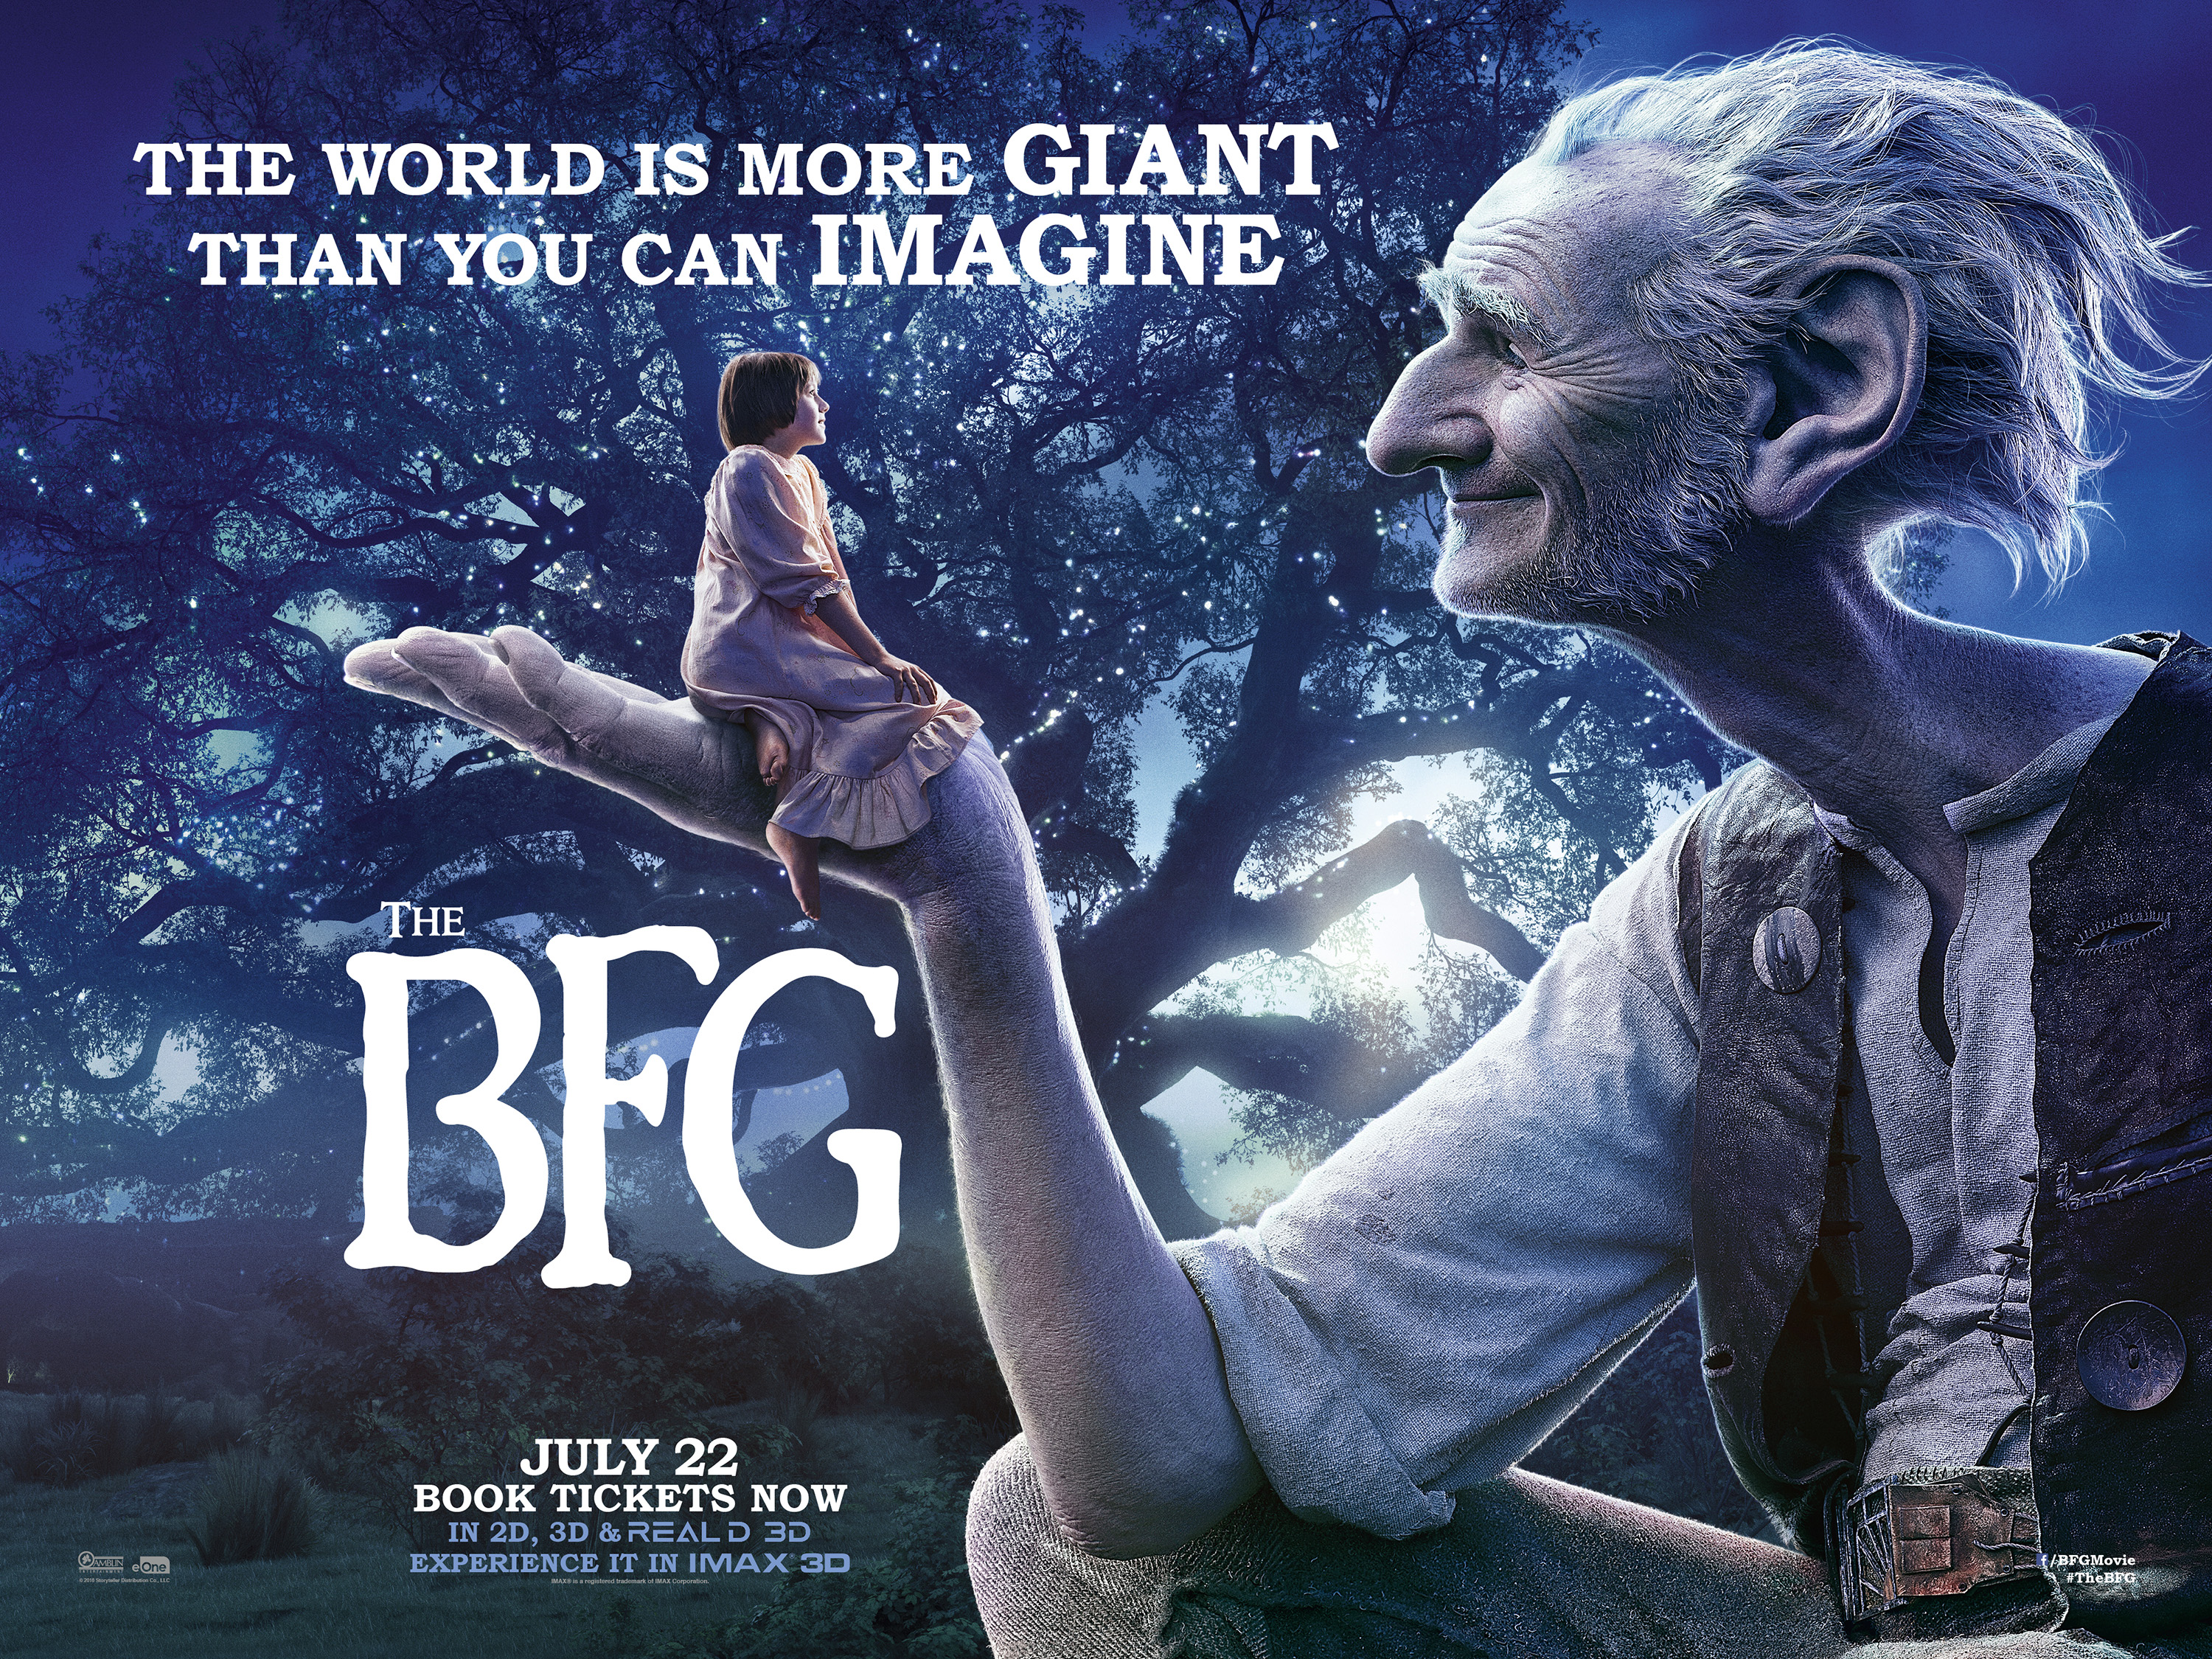 New Posters for 'The BFG'